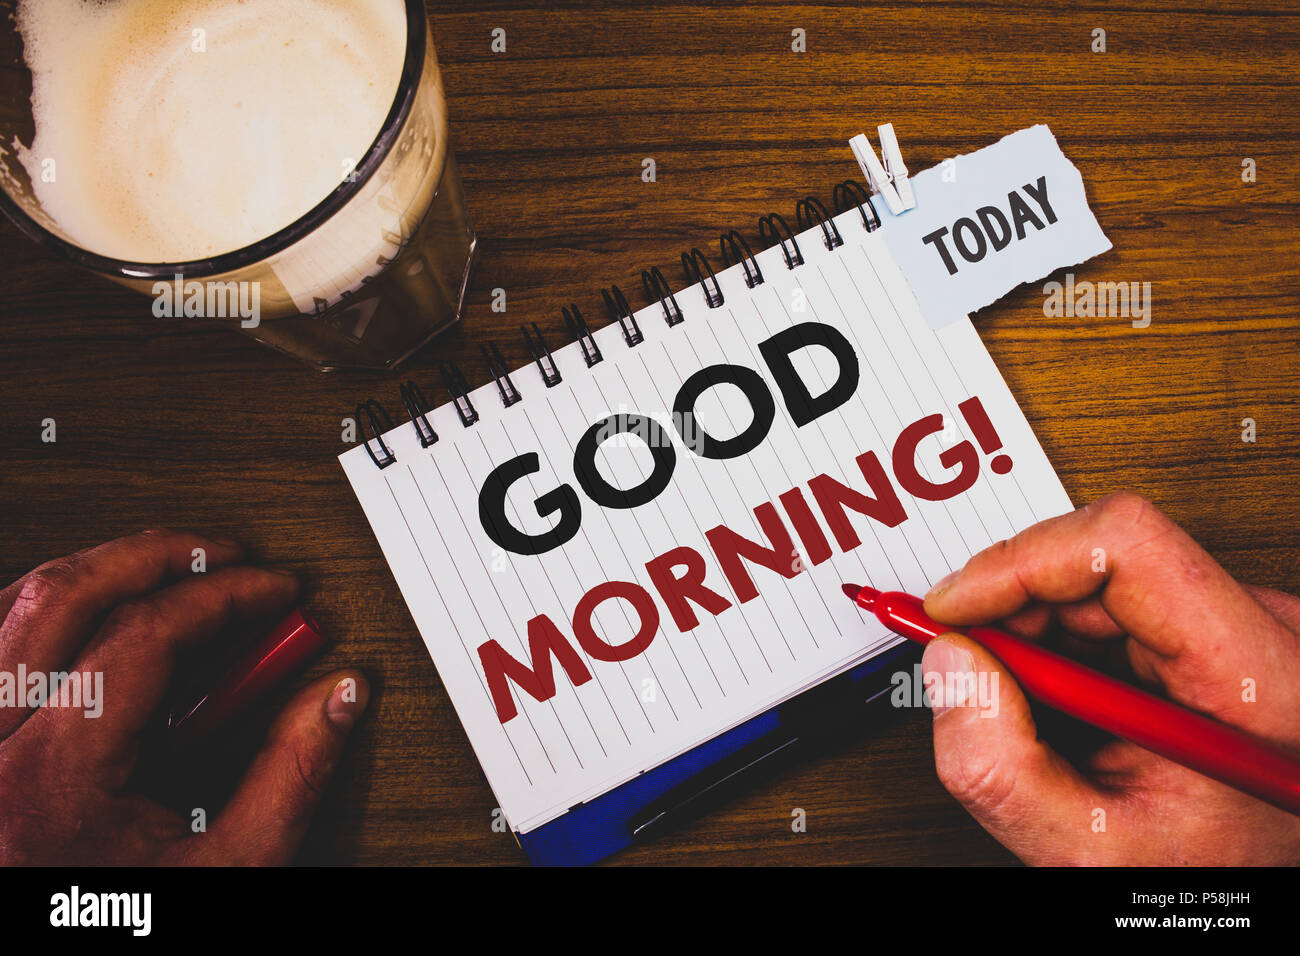 Handwriting textss writing good morning motivational call concept handwriting textss writing good morning motivational call concept meaning greeting wishes for a great day inspirational m4hsunfo